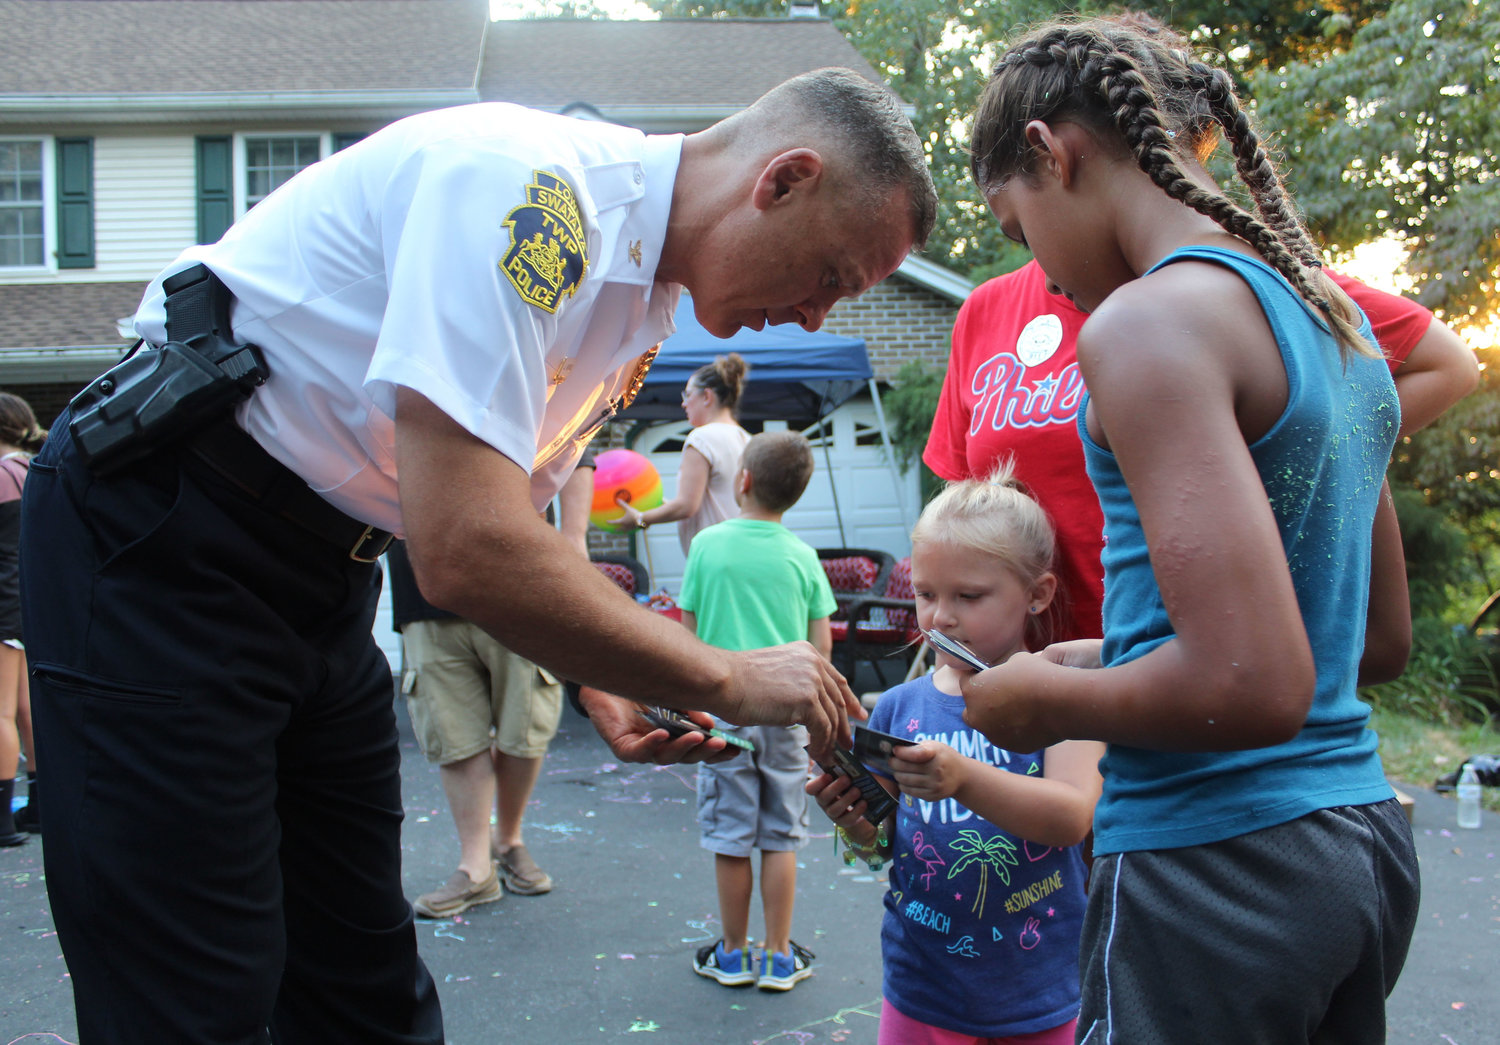 Lower Swatara Police Chief Jeff Vargo signs baseball cards for Rylee Miller and Safia Aman during National Night Out in Lower Swatara on Aug. 6.